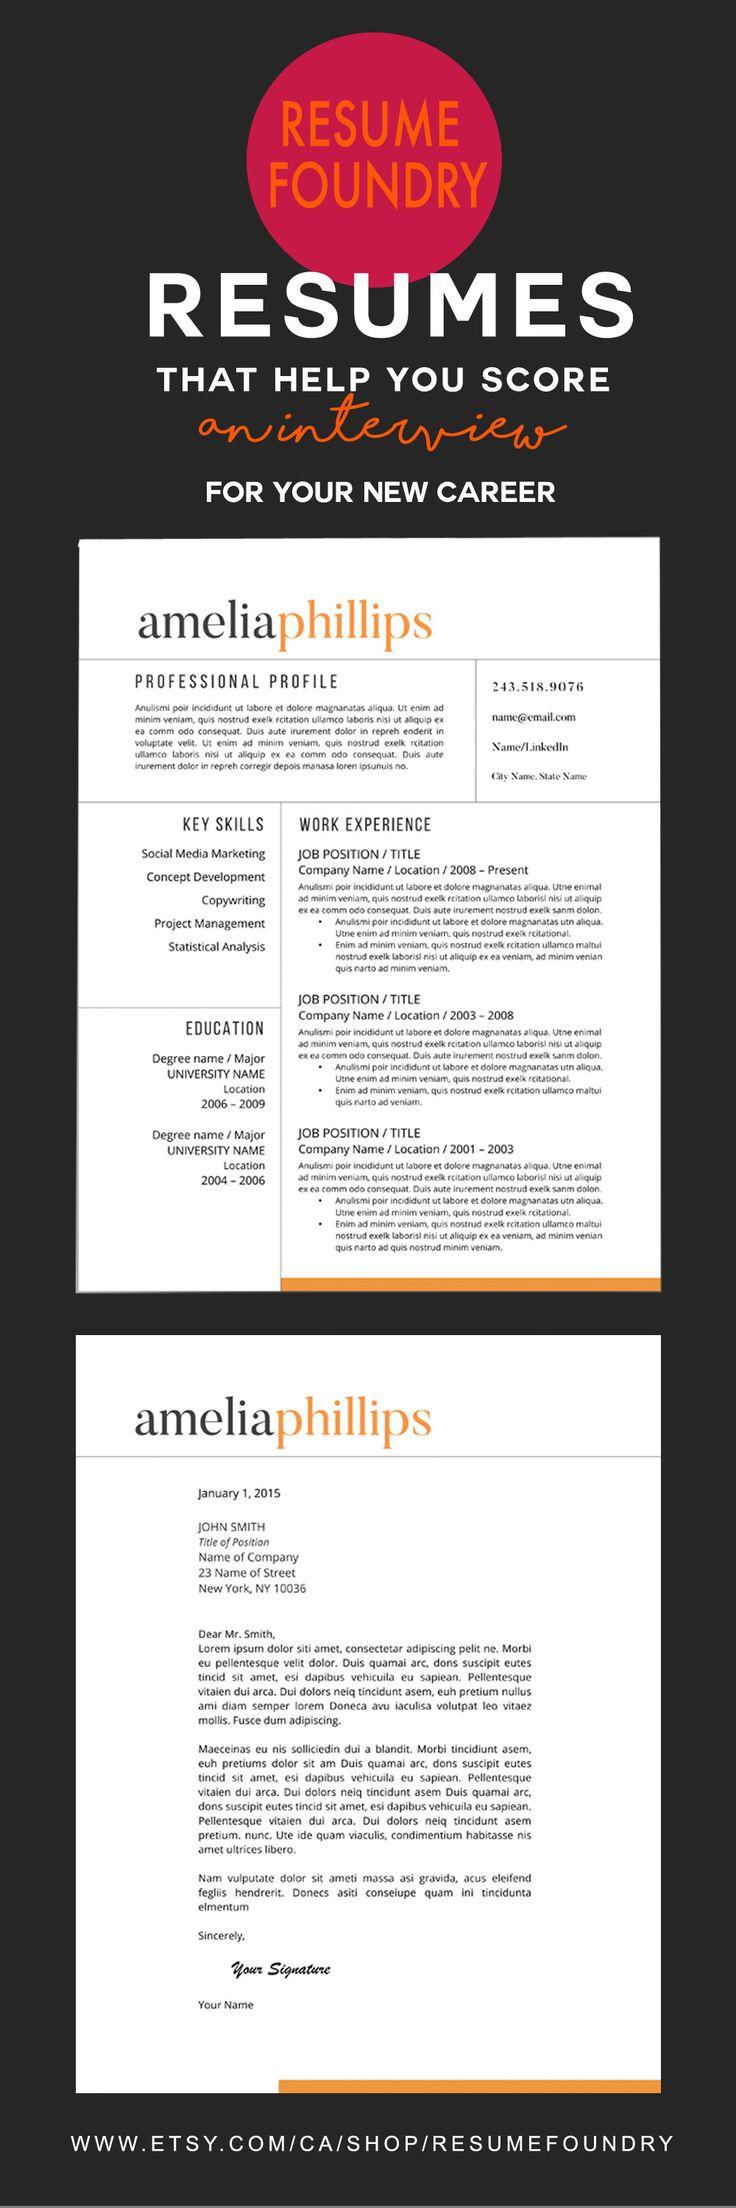 1000 images about biodata for marriage samples on pinterest - A Professional Resume Template With A Zing Of Color To Catch The Recruiters Eye Only